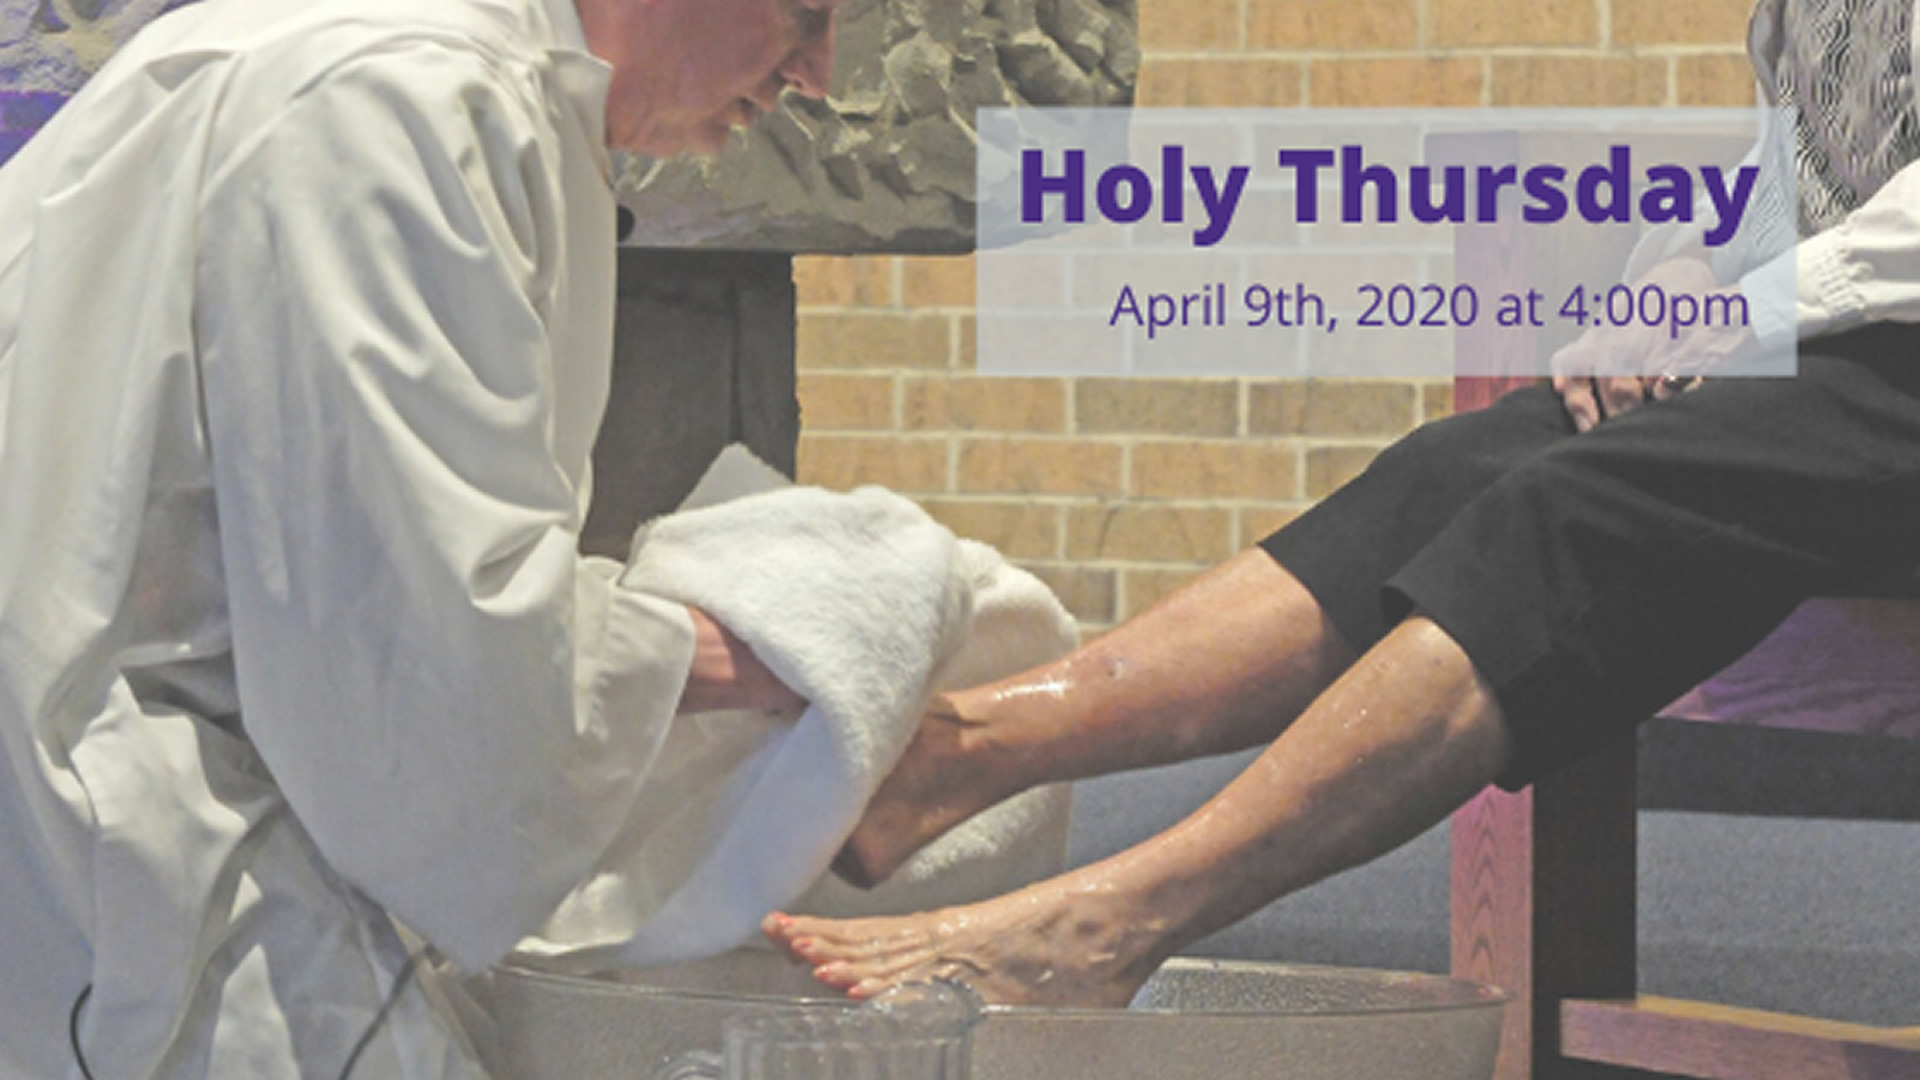 Holy Thursday - Live-streamed from the Catholic Diocese of Cleveland - Thursday, April 9th at 4:00pm